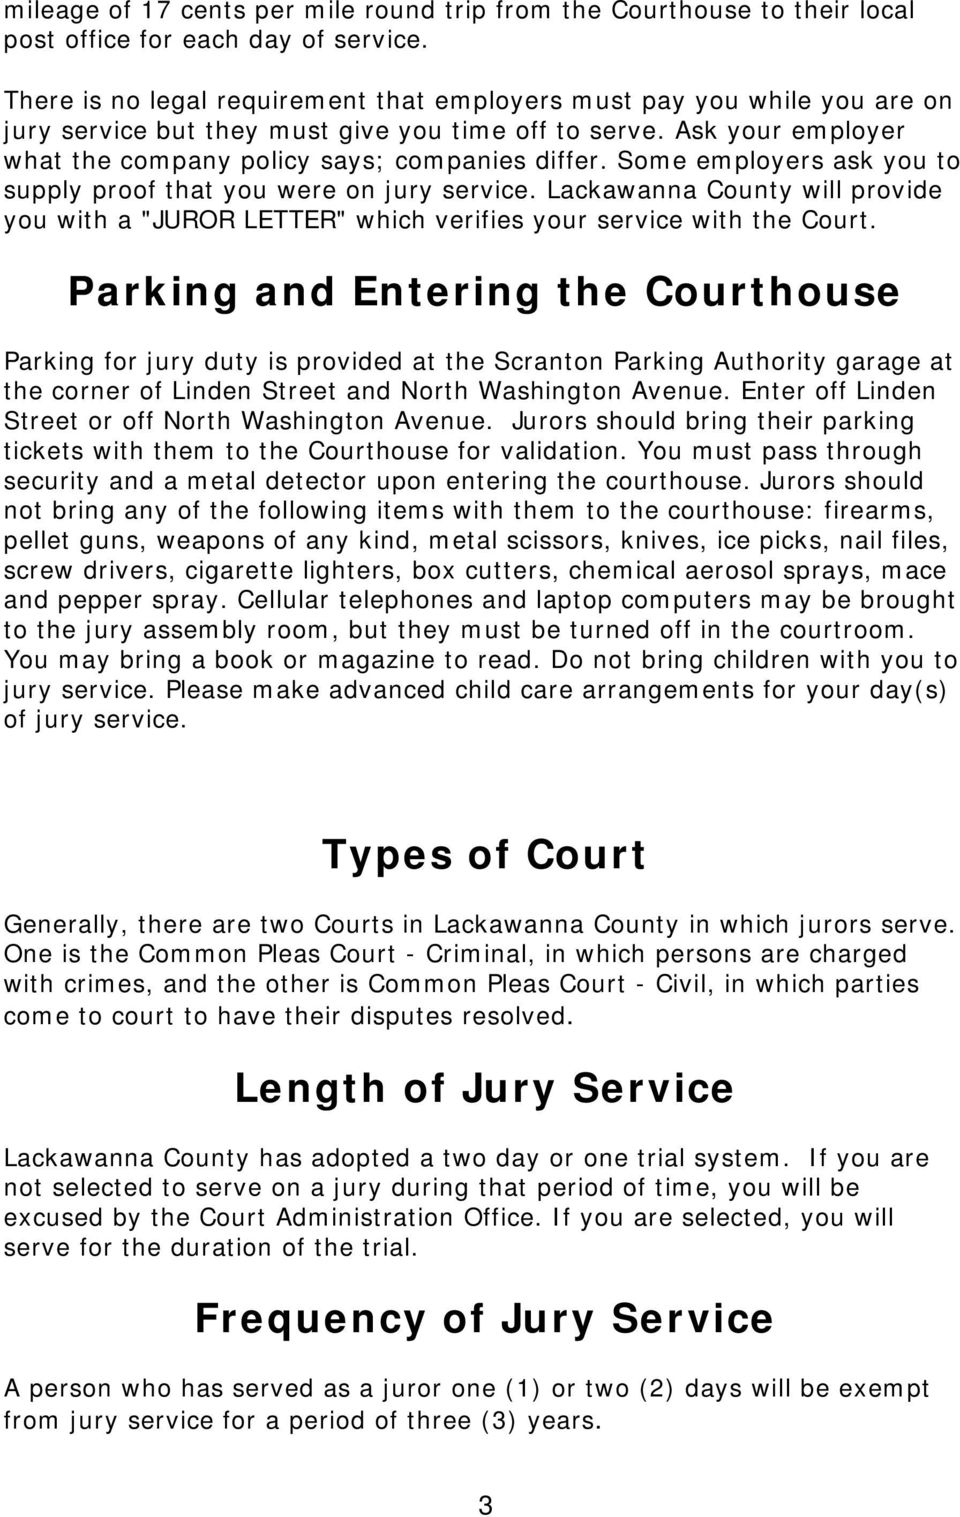 "Some employers ask you to supply proof that you were on jury service. Lackawanna County will provide you with a ""JUROR LETTER"" which verifies your service with the Court."